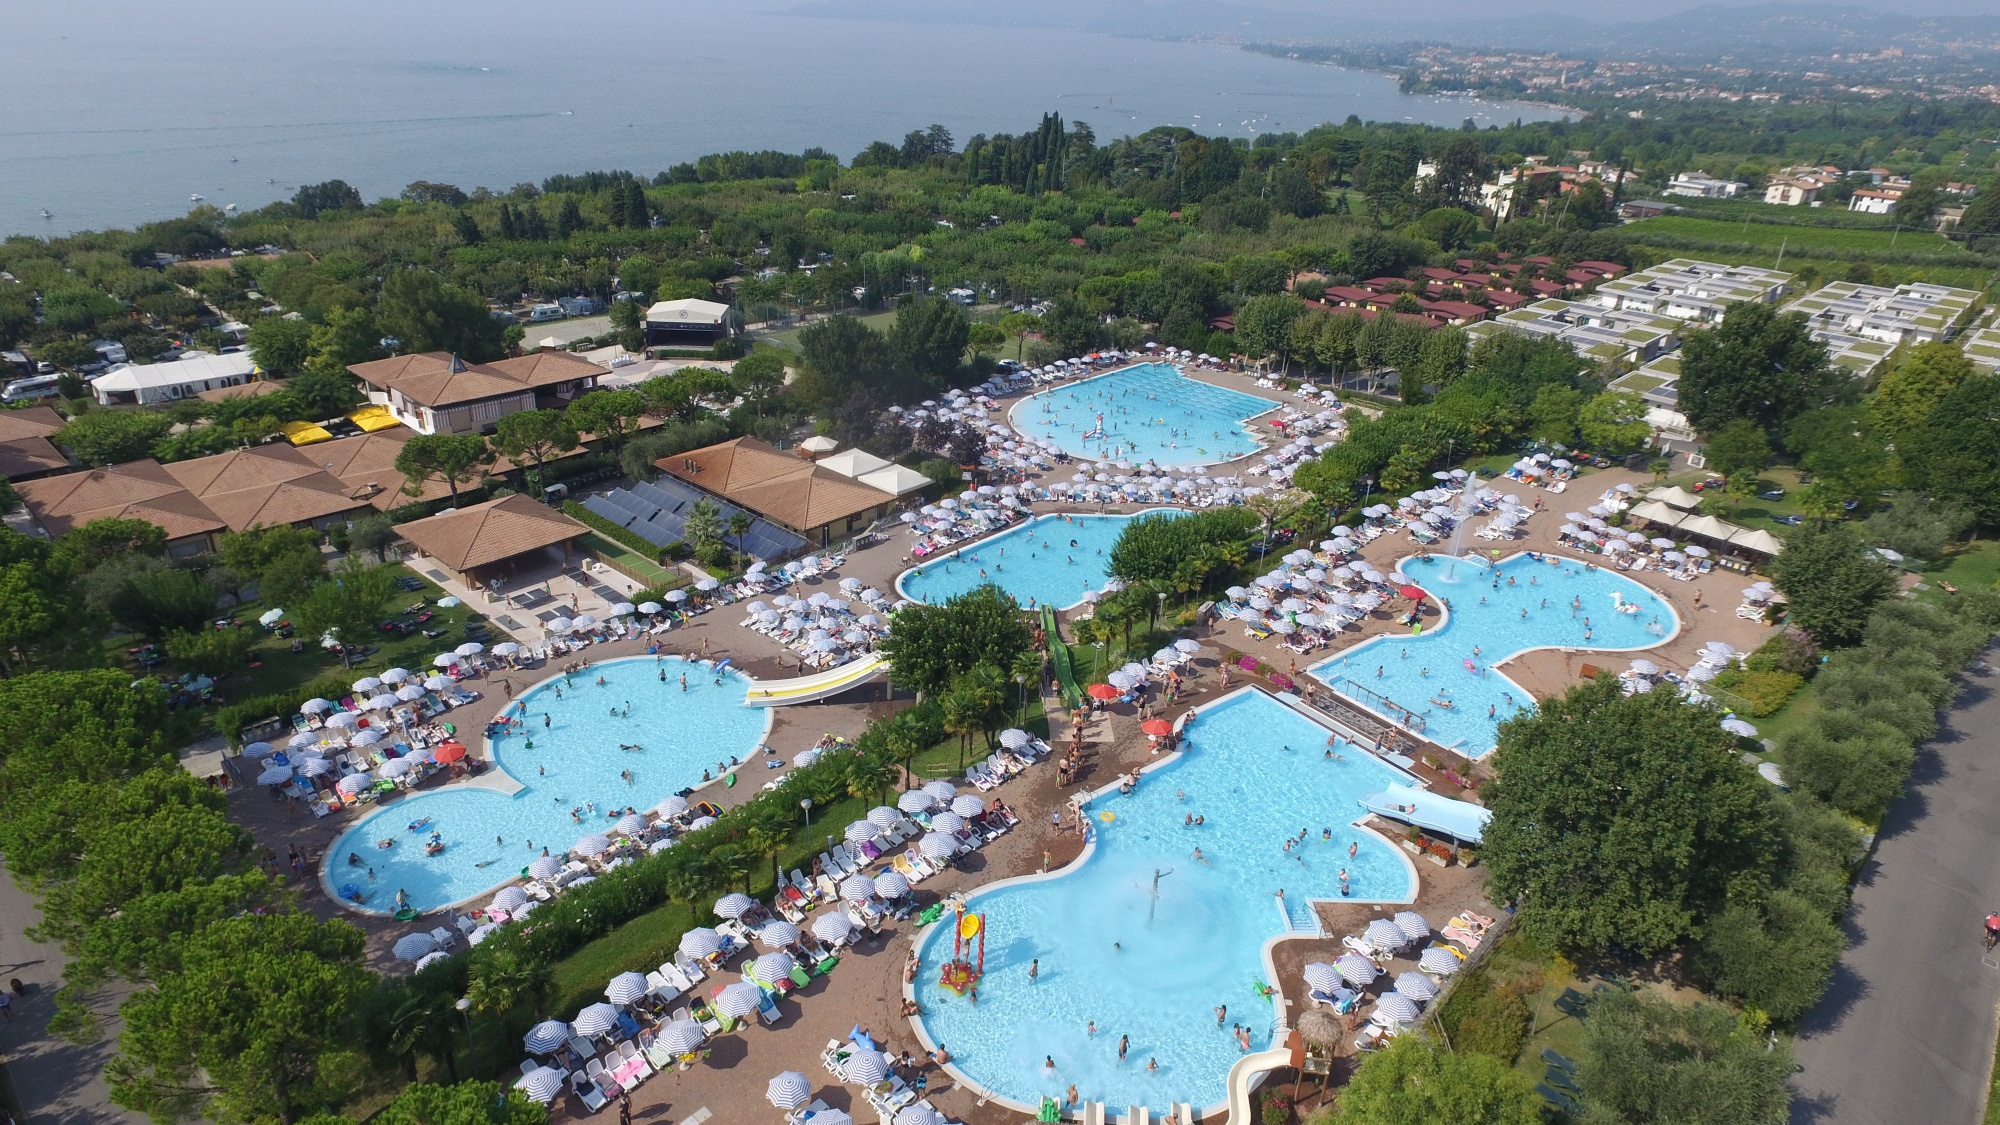 Piani di clodia holiday park lazise verona view all for Piani di palestra giungla